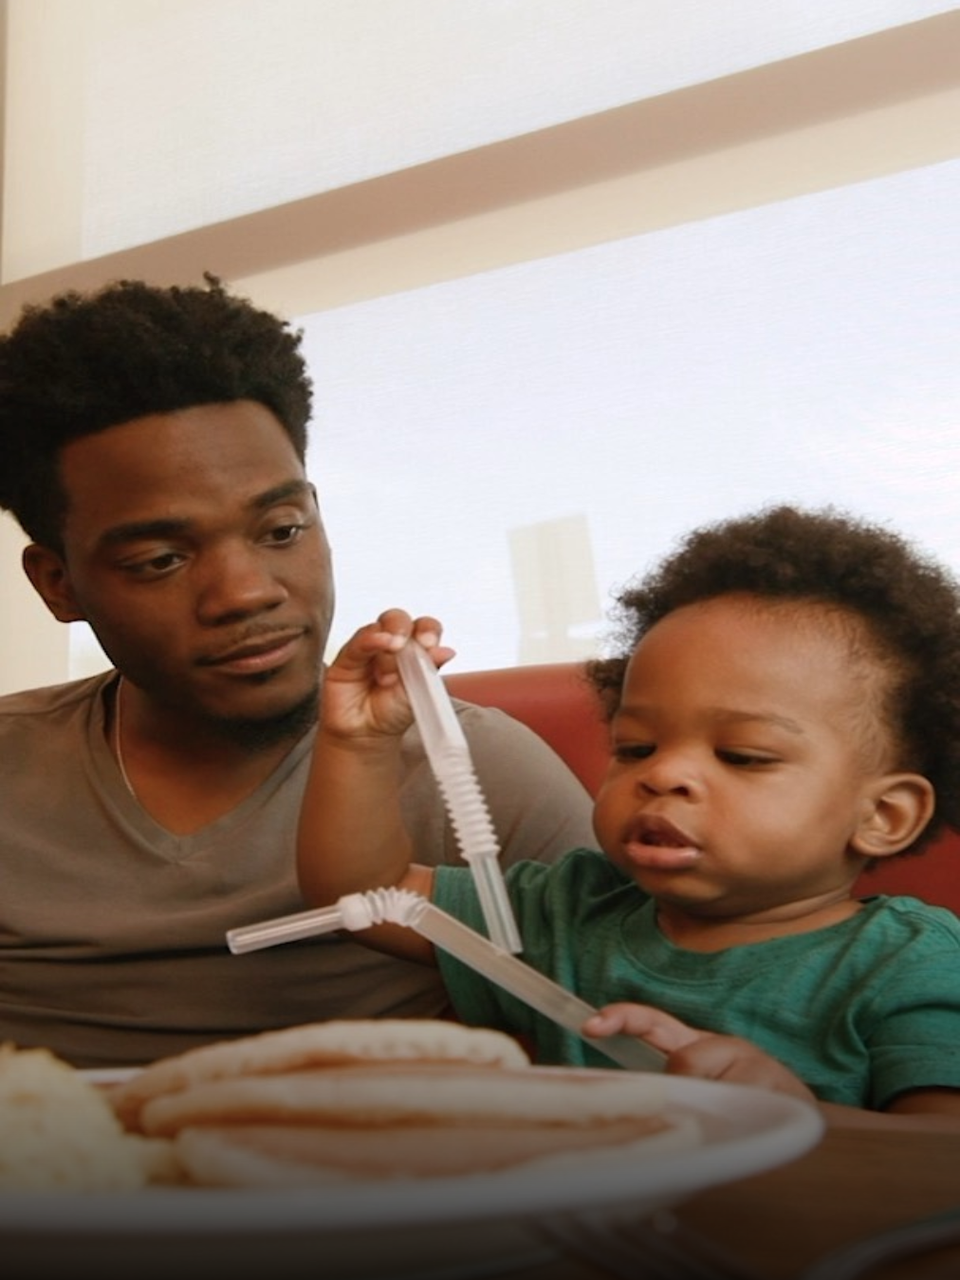 Viral Father And Talking Baby Star In New Denny's Commercial